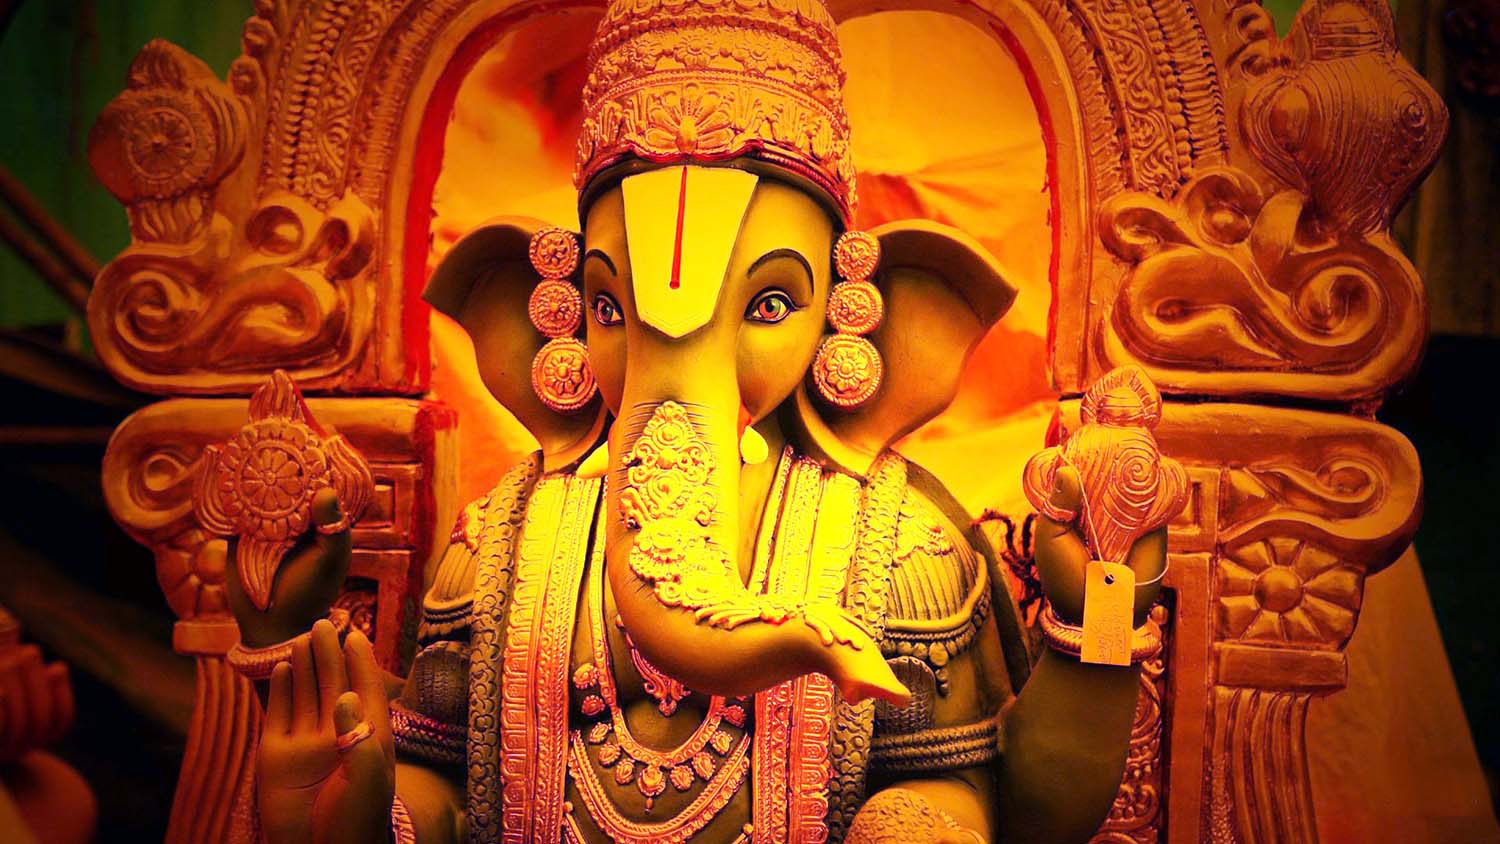 Photo of Ganesh ji in Balaji semblance!